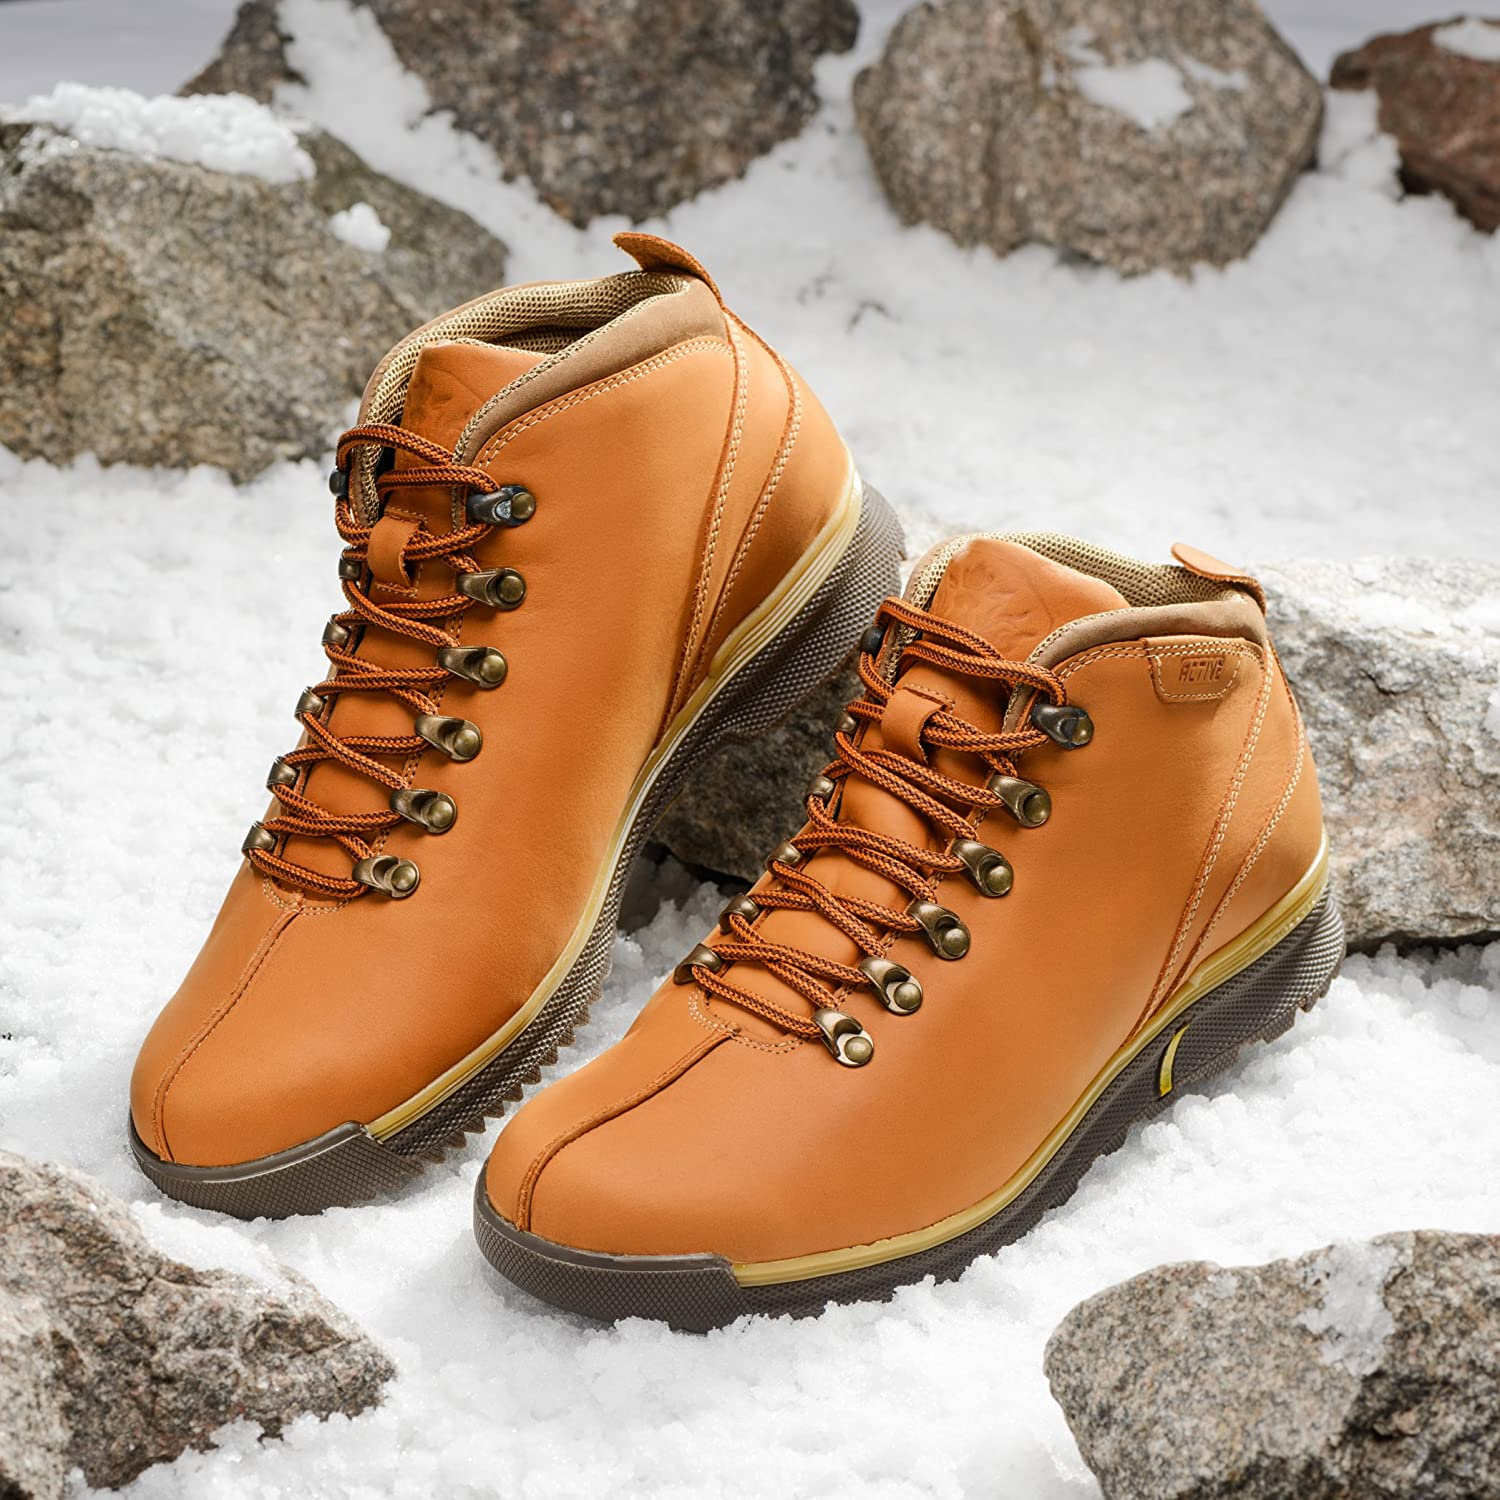 MIDA Men's Winter Winter Winter Boots 12210: Leather And Fur Snow Shoes, Abrasion Resistant, Non-Slip OC System Sole, Safety Ice Footwear, Warm And Comfortable B0778PSLKB Snow Boots 99bc89